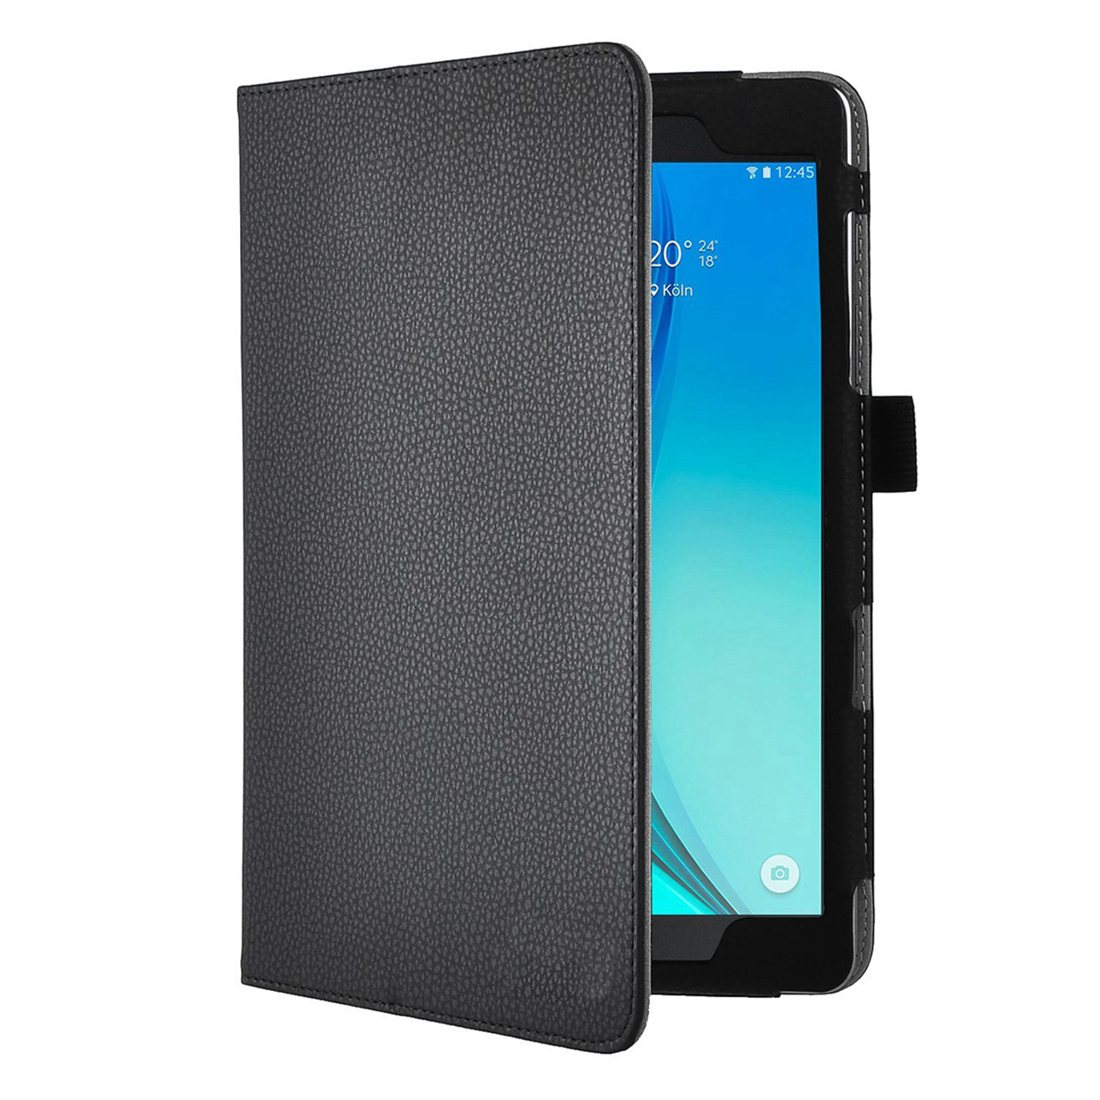 PU Leather Slim-Book Case Ultra-Slim and Ultra-light  Folio  Stand Cover for Samsung Galaxy Tab S2 Nook 9.7-Inch Tablet (Black) ultra slim folio stand print flower pu leather case protective cover for samsung galaxy tab s 8 4 t700 t701 t705 t705c tablet